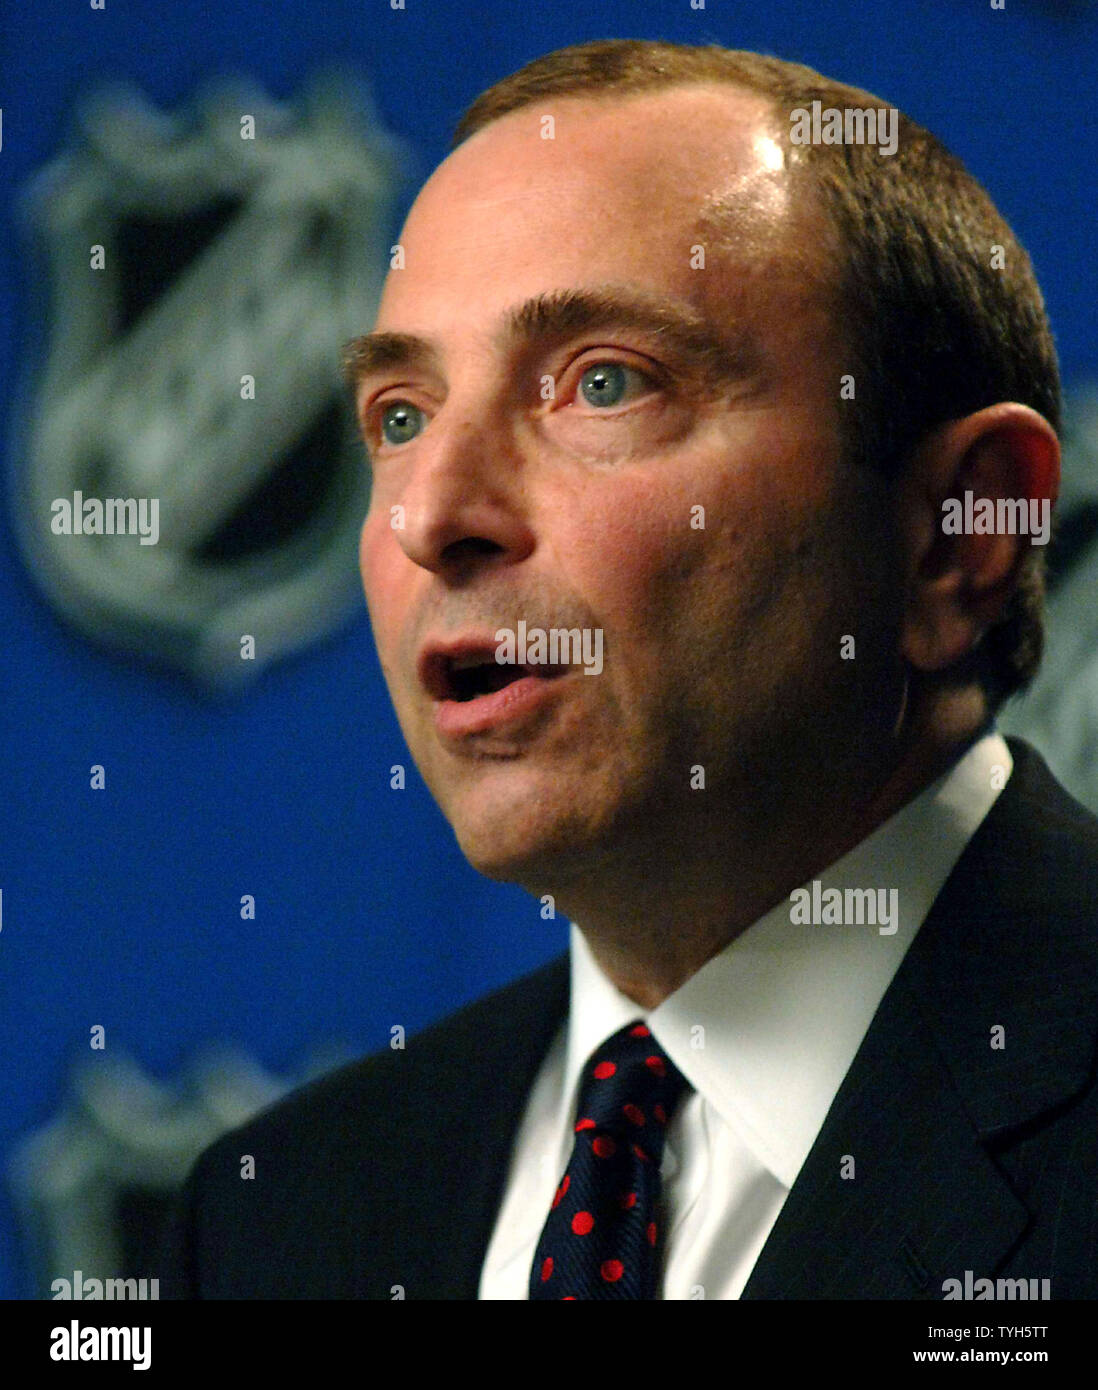 Nhl Lockout Stock Photos Nhl Lockout Stock Images Alamy